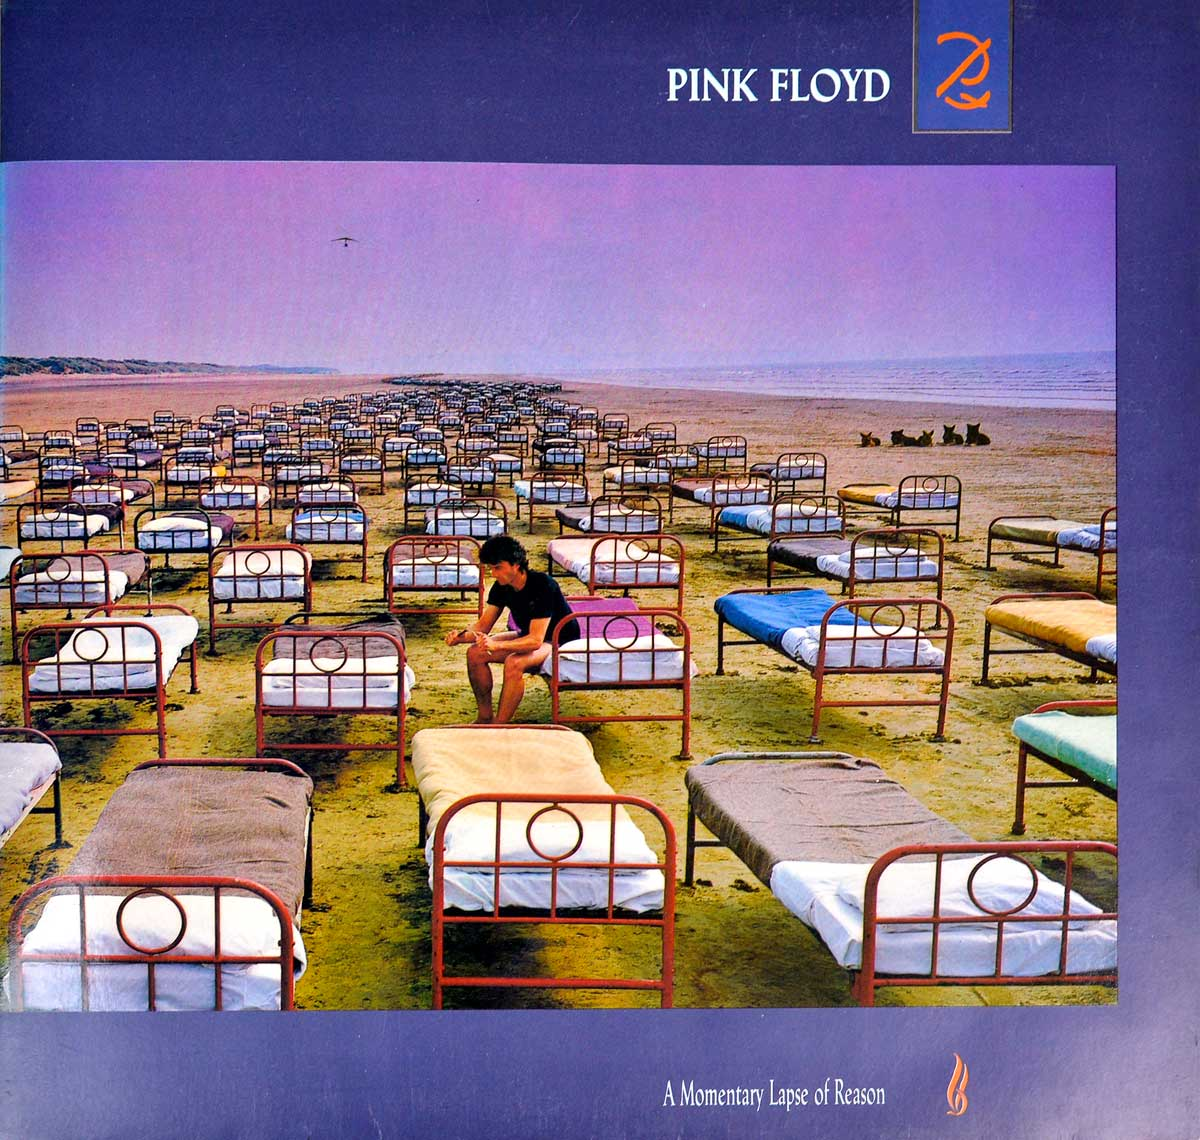 Album Front Cover Photo of PINK FLOYD Momentary Lapse of Reason